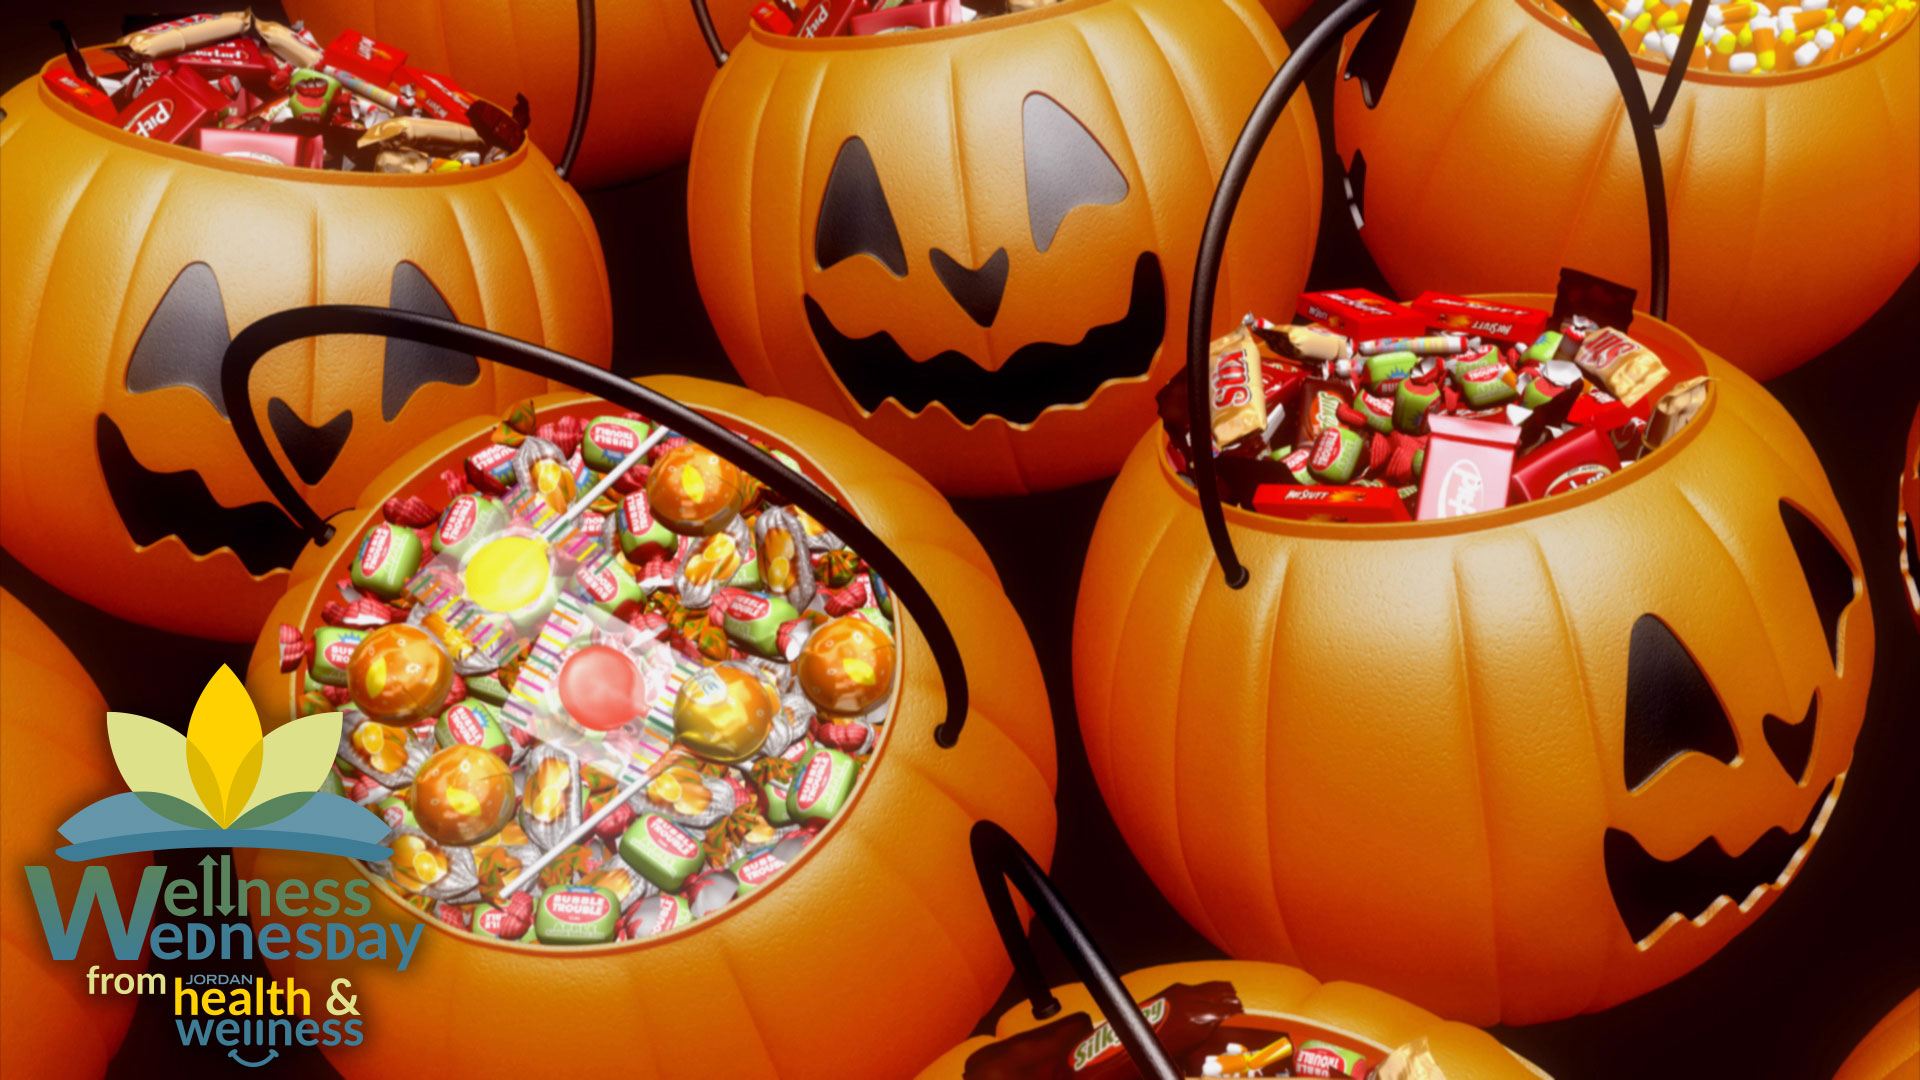 Jack-O-Lantern buckets filled with candy